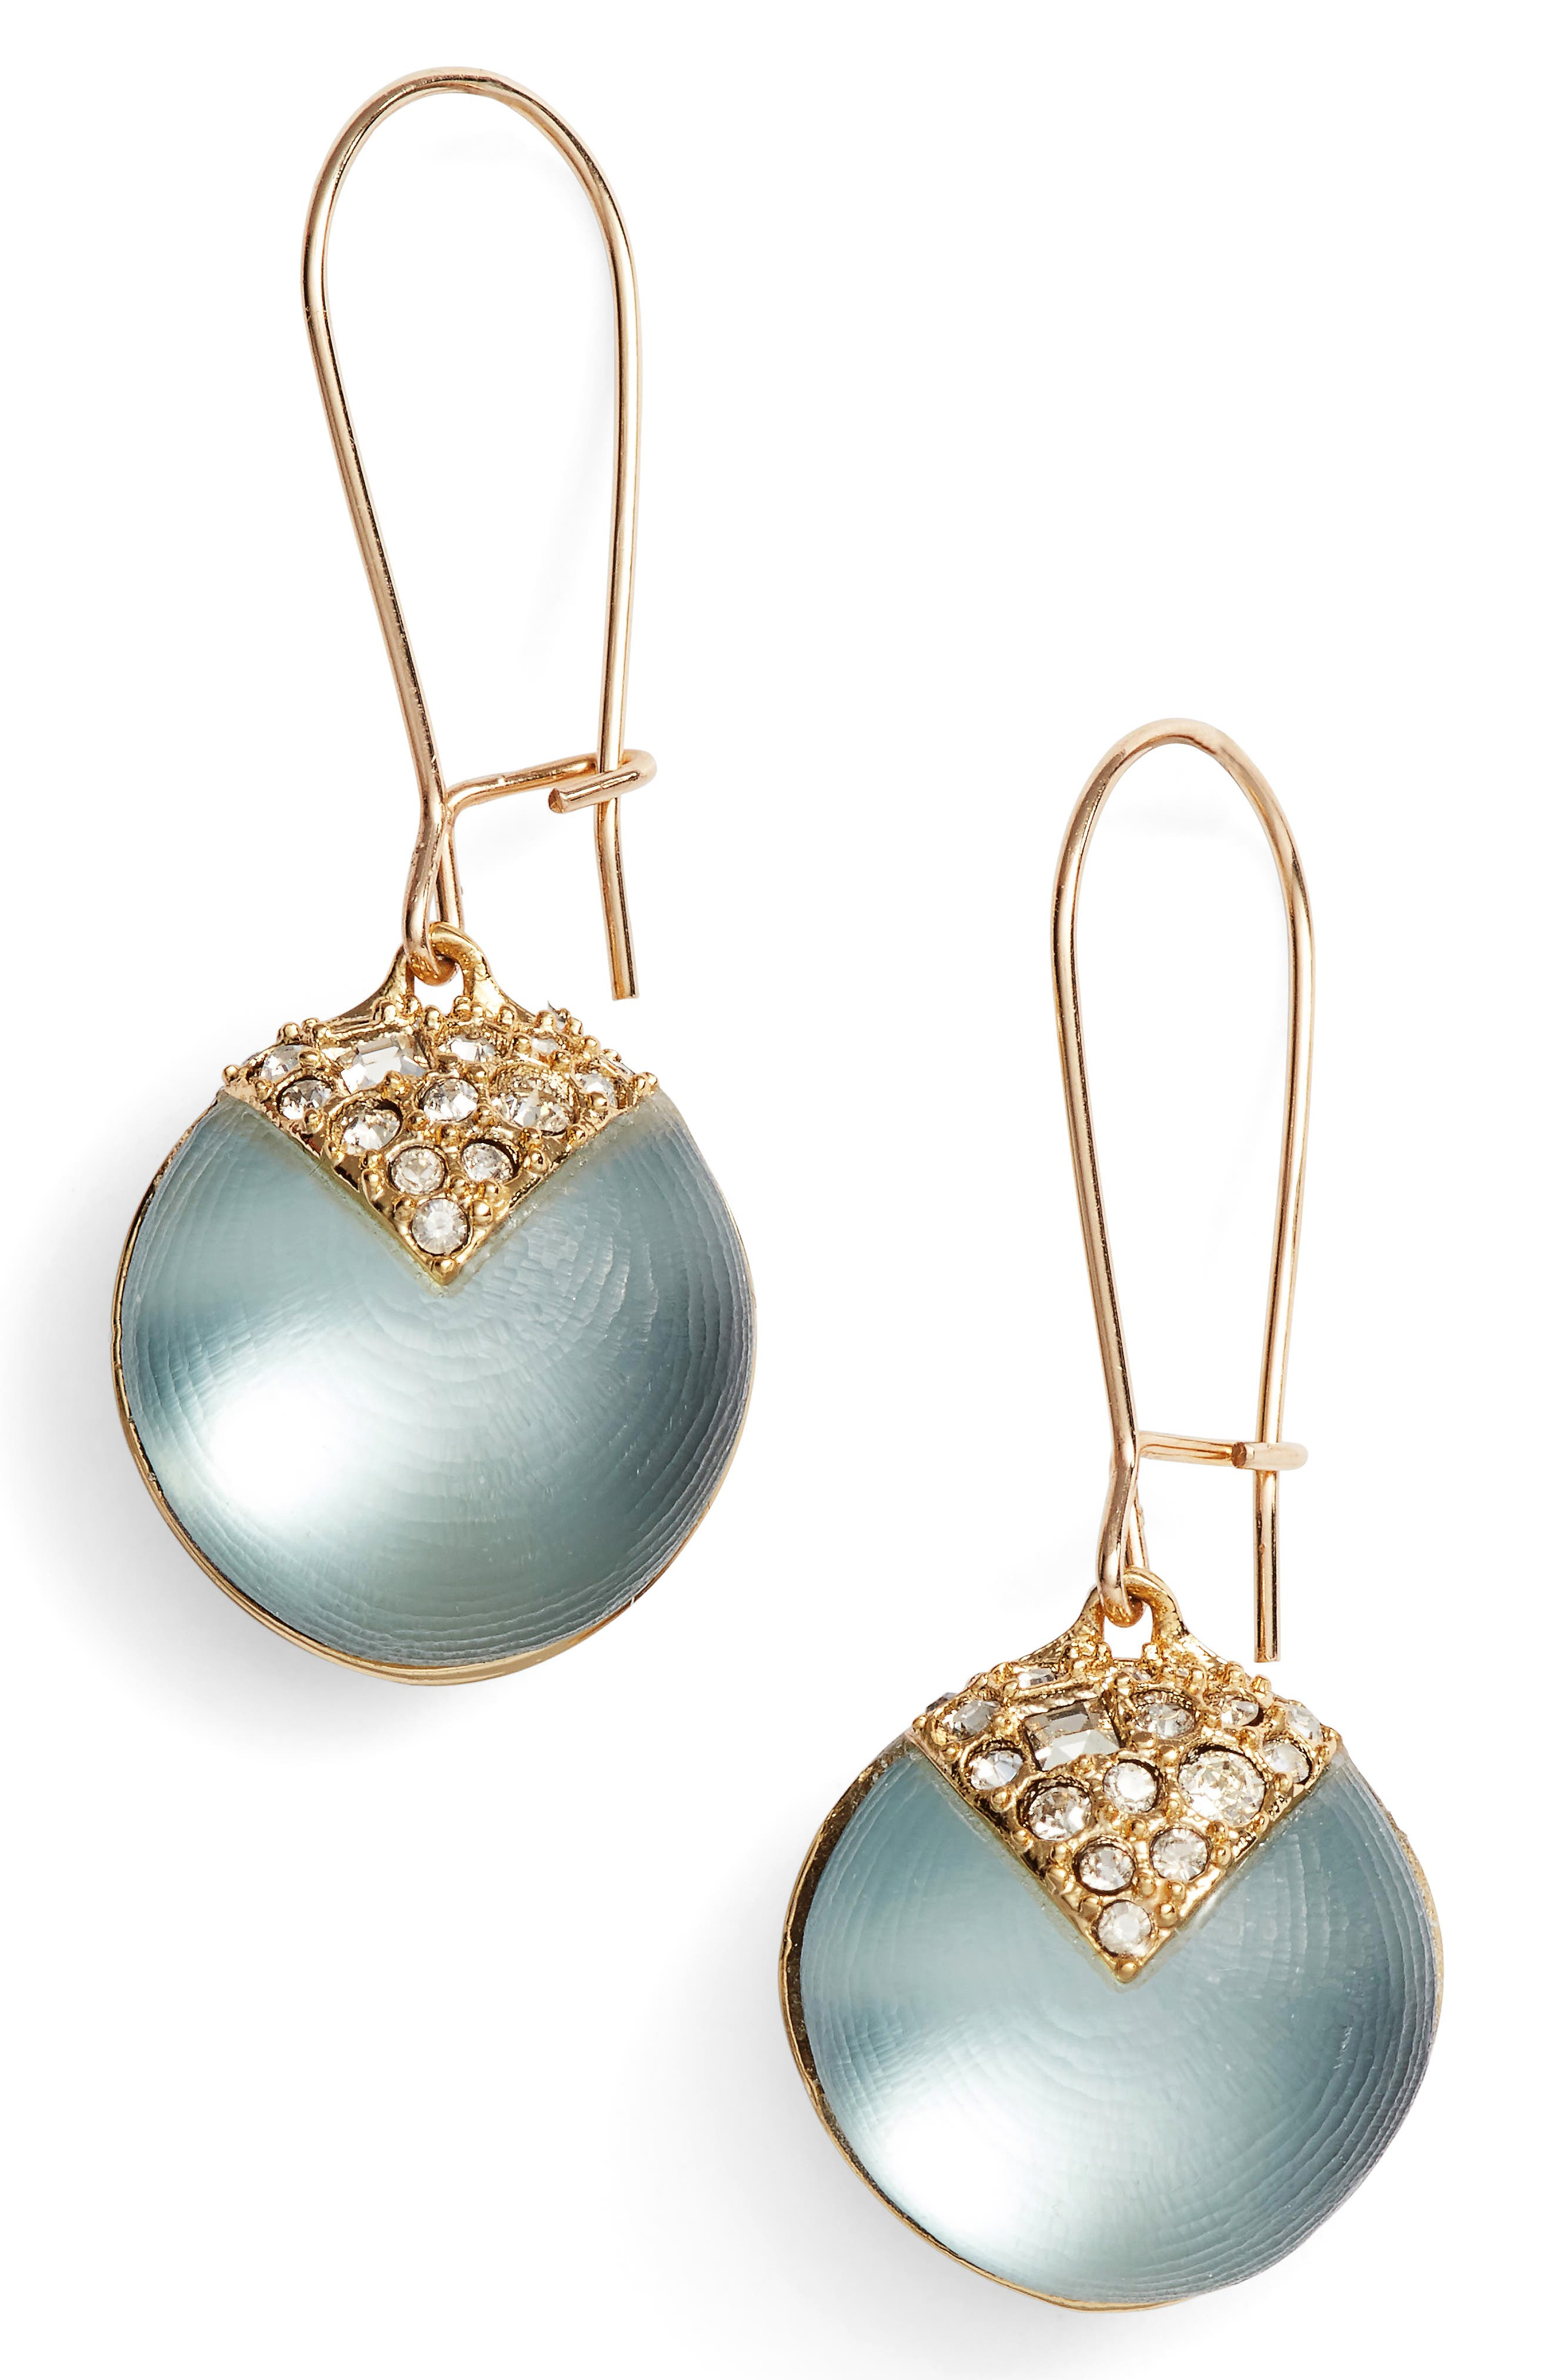 Alex Bittar Crystal Encrusted Lucite<sup>®</sup> Sphere Drop Earrings,                             Main thumbnail 1, color,                             050